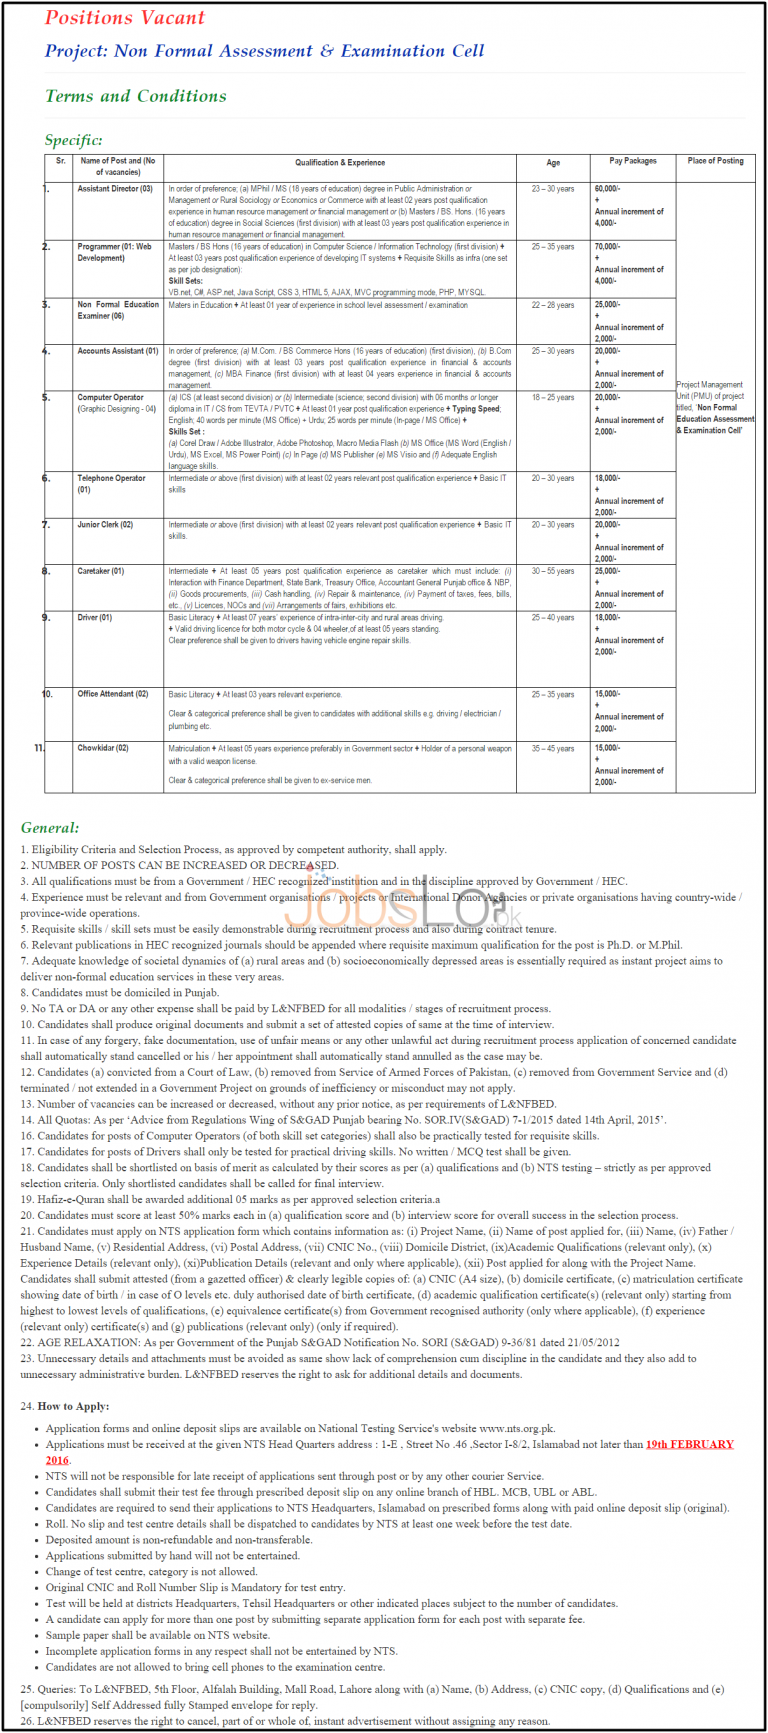 Literacy & NFBE Department NTS Jobs 2016 Non Formal Assessment & Examination Cell